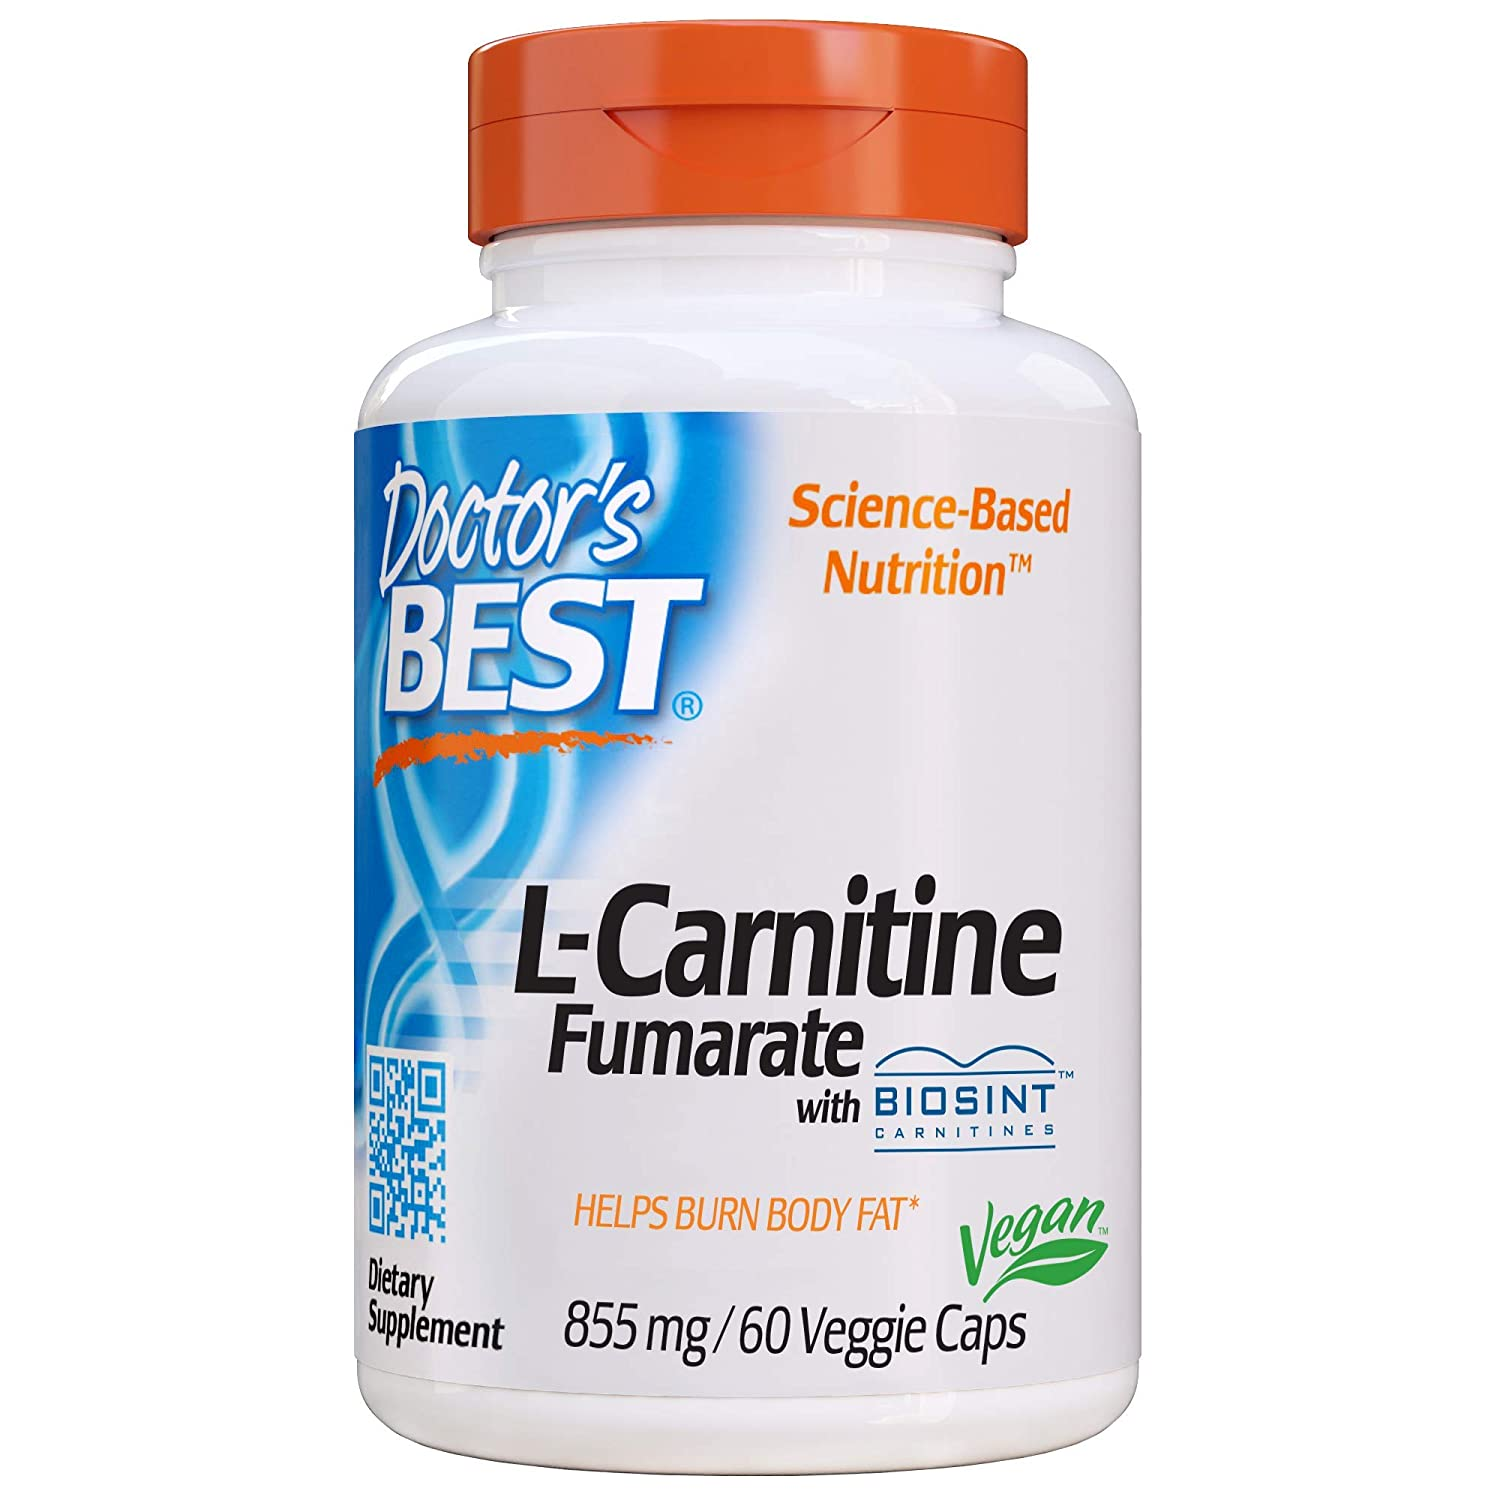 Doctor's Best L-Carnitine Fumarate, Non-GMO, Vegan, Gluten Free, Heart Health, 855 mg, 60 Count Veggie Caps